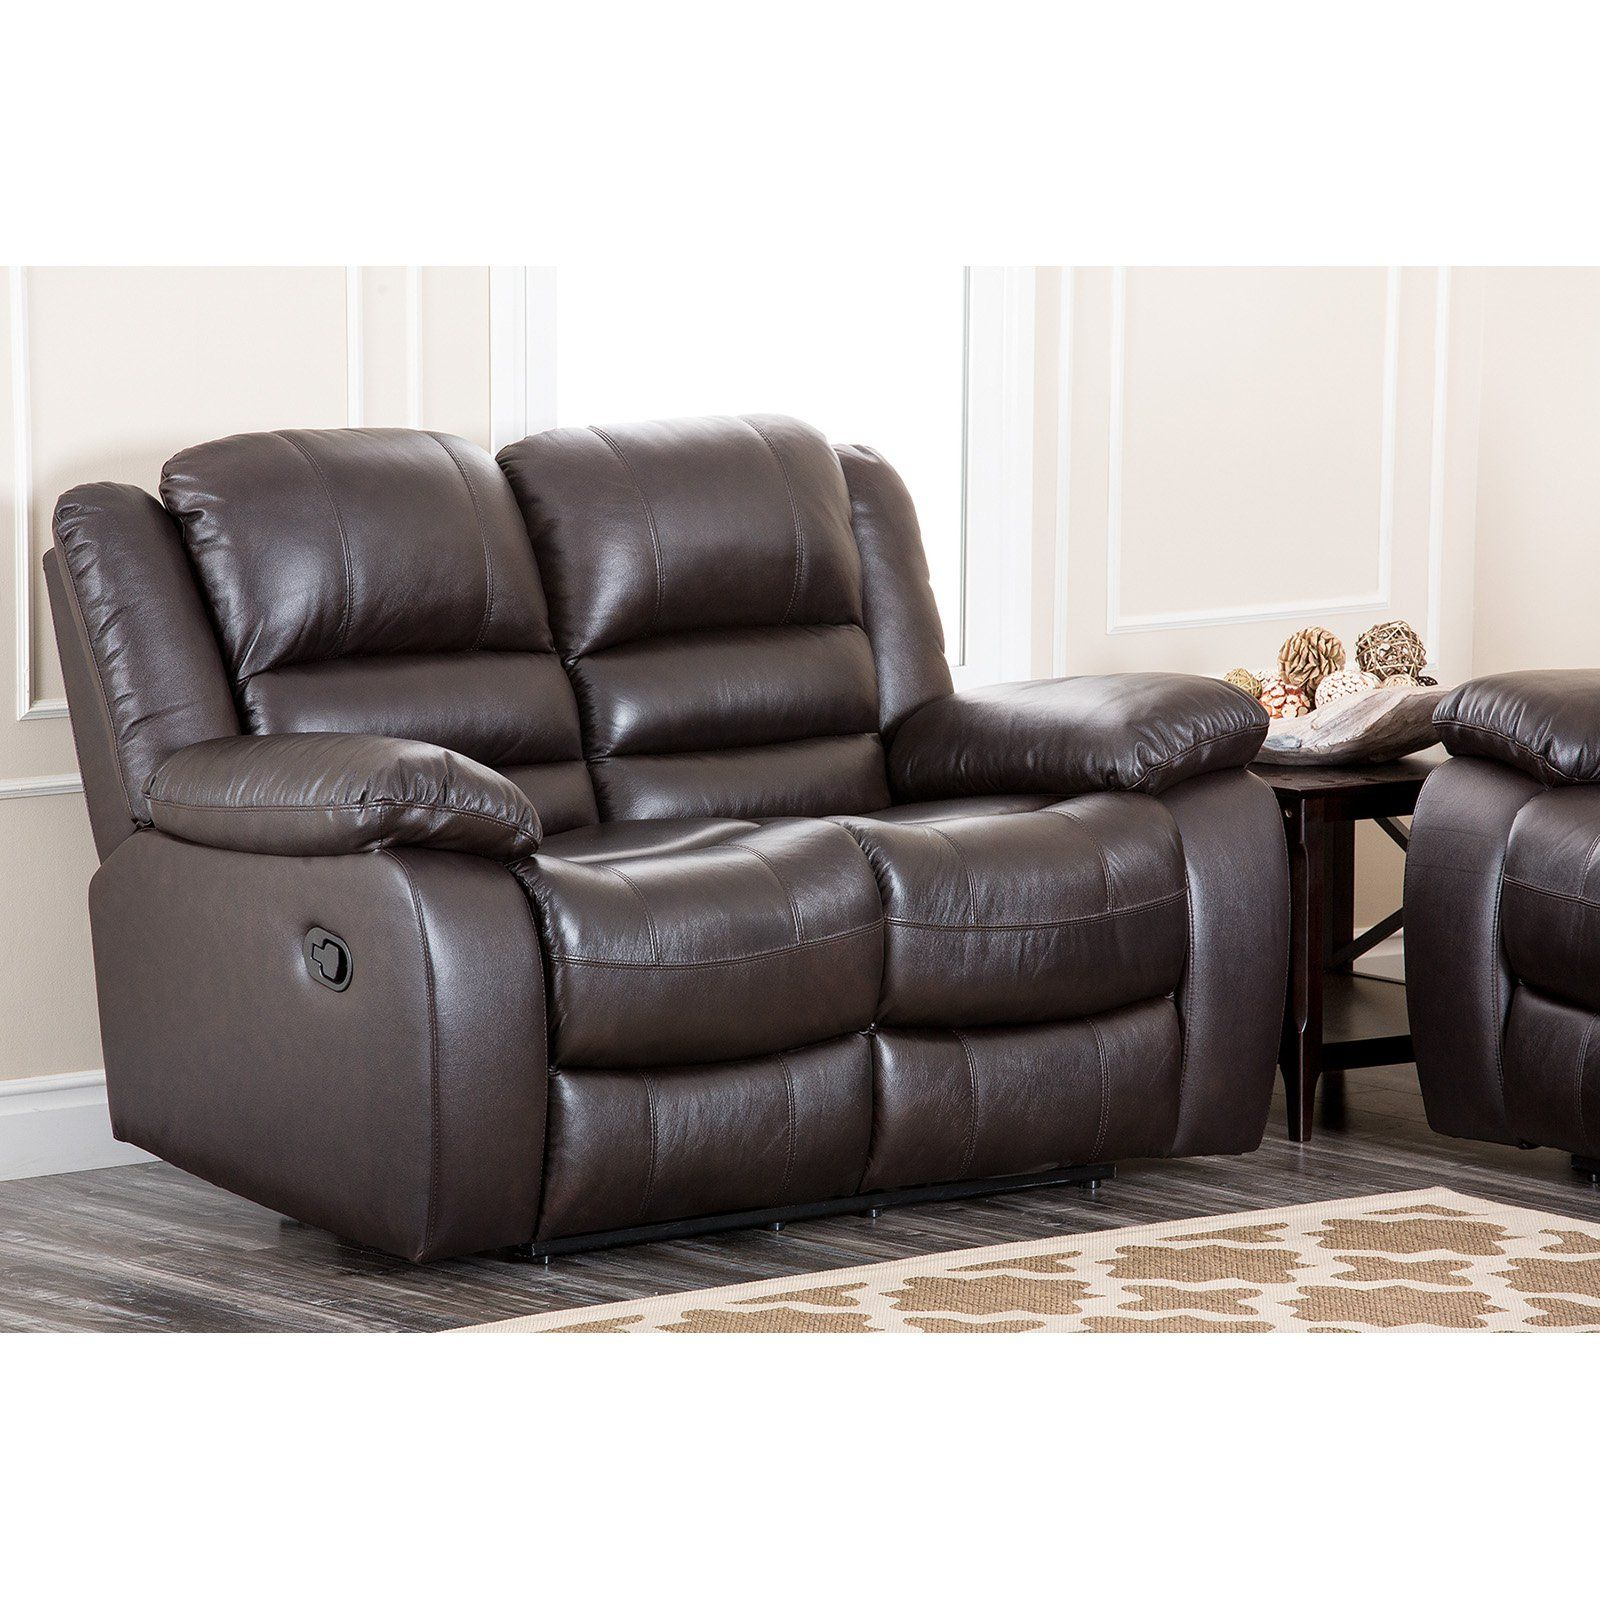 Abbyson Anderson Leather Reclining Loveseat CH8801BRN